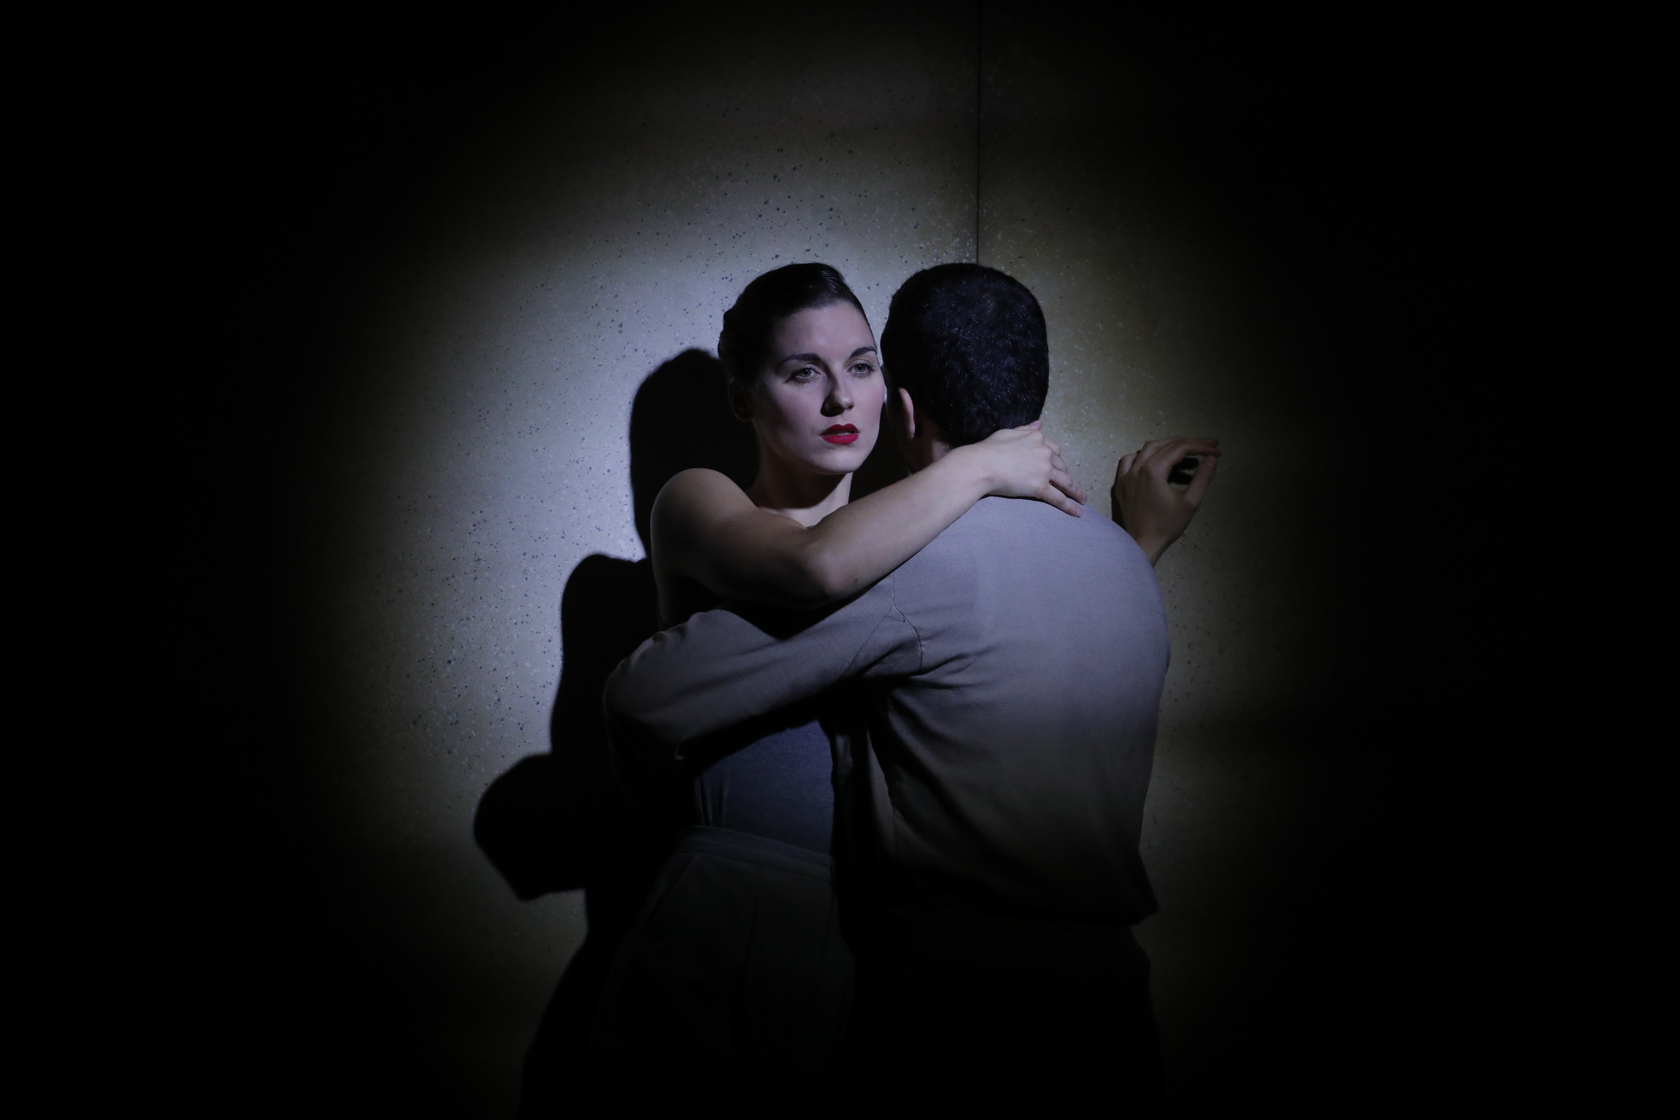 Male and female in a firm hug against a wall. We see her sad face, he has his back turned to the audience.